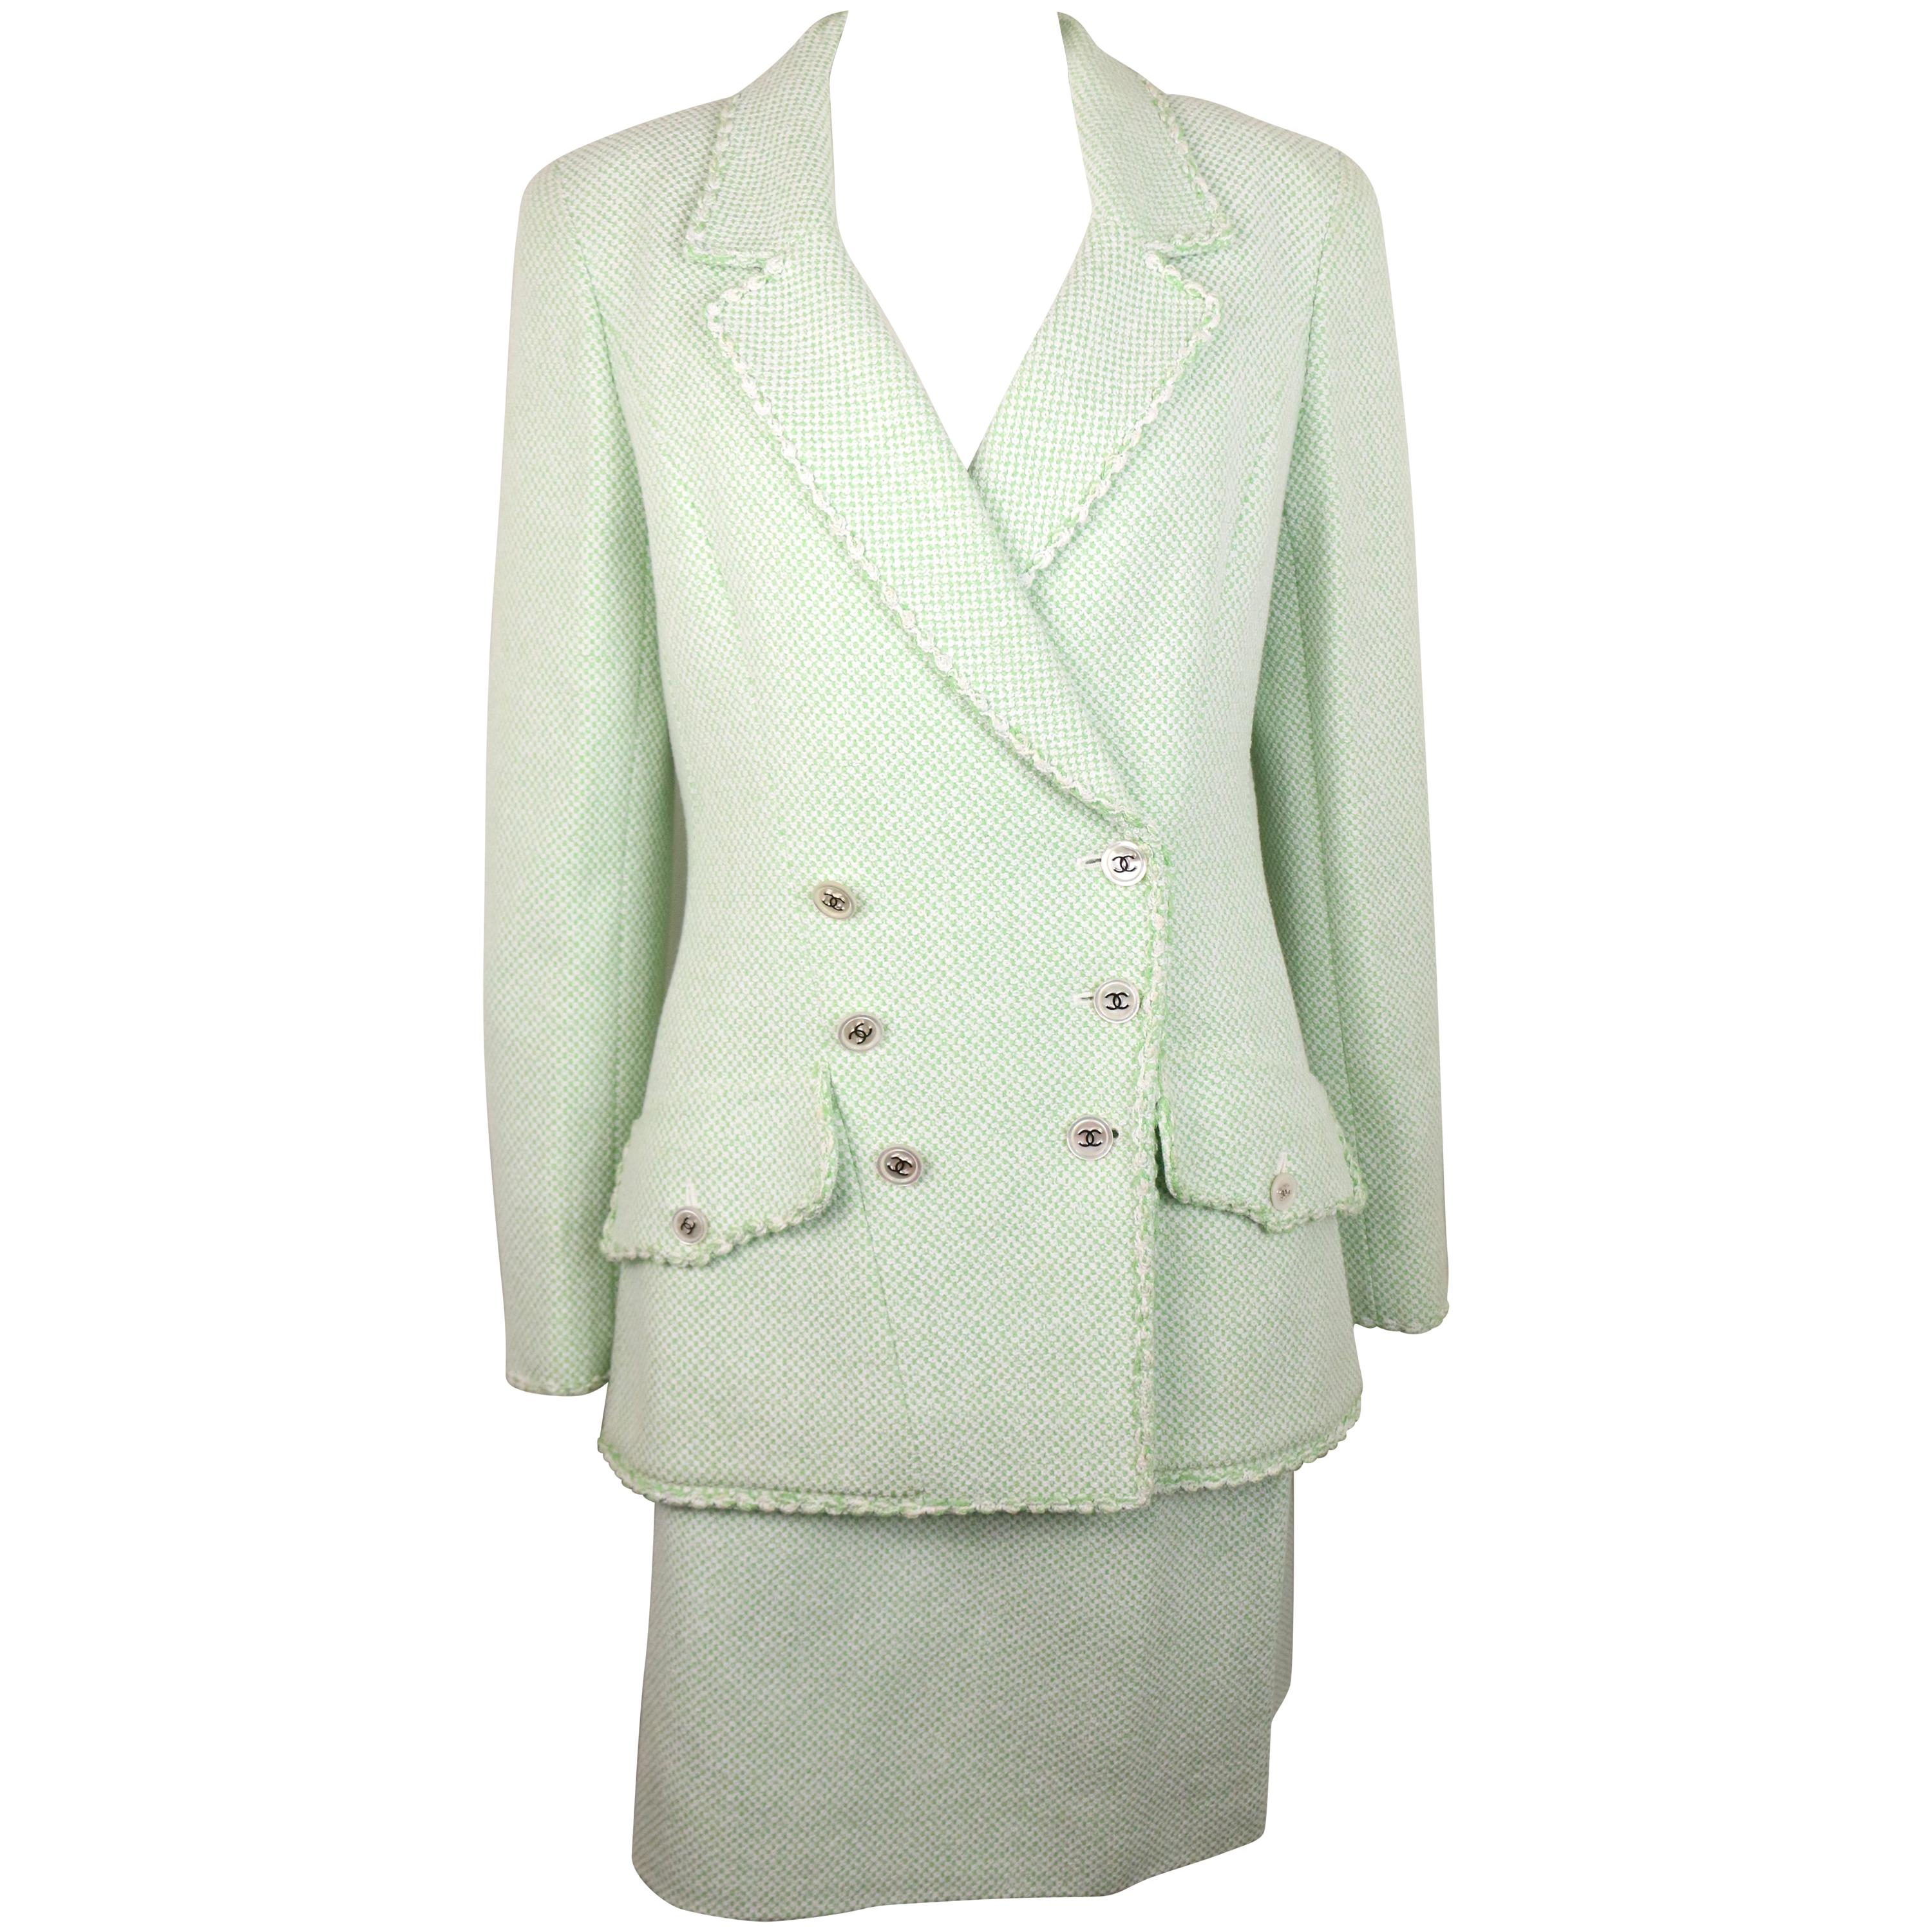 fbd664d331c8 Documented F/W 1988 Vintage Chanel Boutique Skirt Suit Boucle Wool Fringe  at 1stdibs